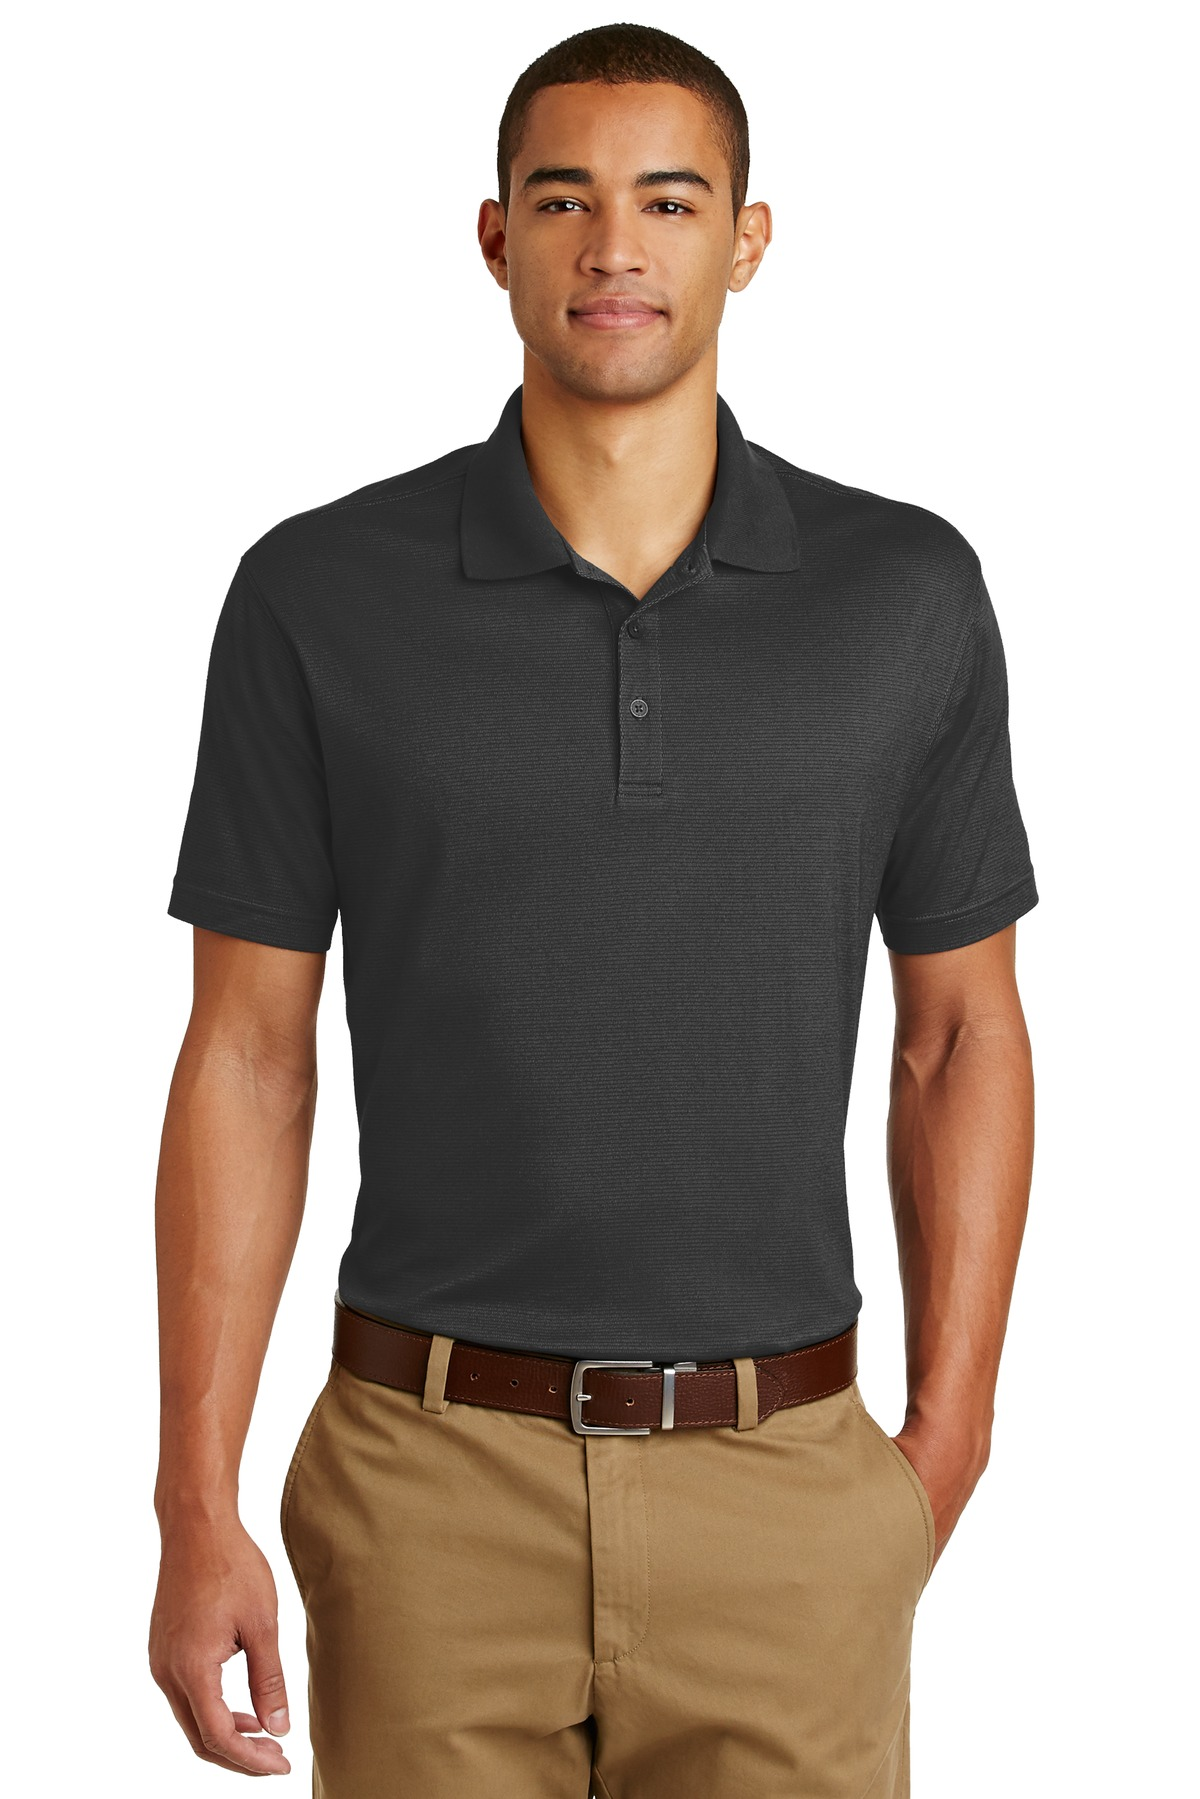 Eddie Bauer ®  Performance Polo. EB102 - Black